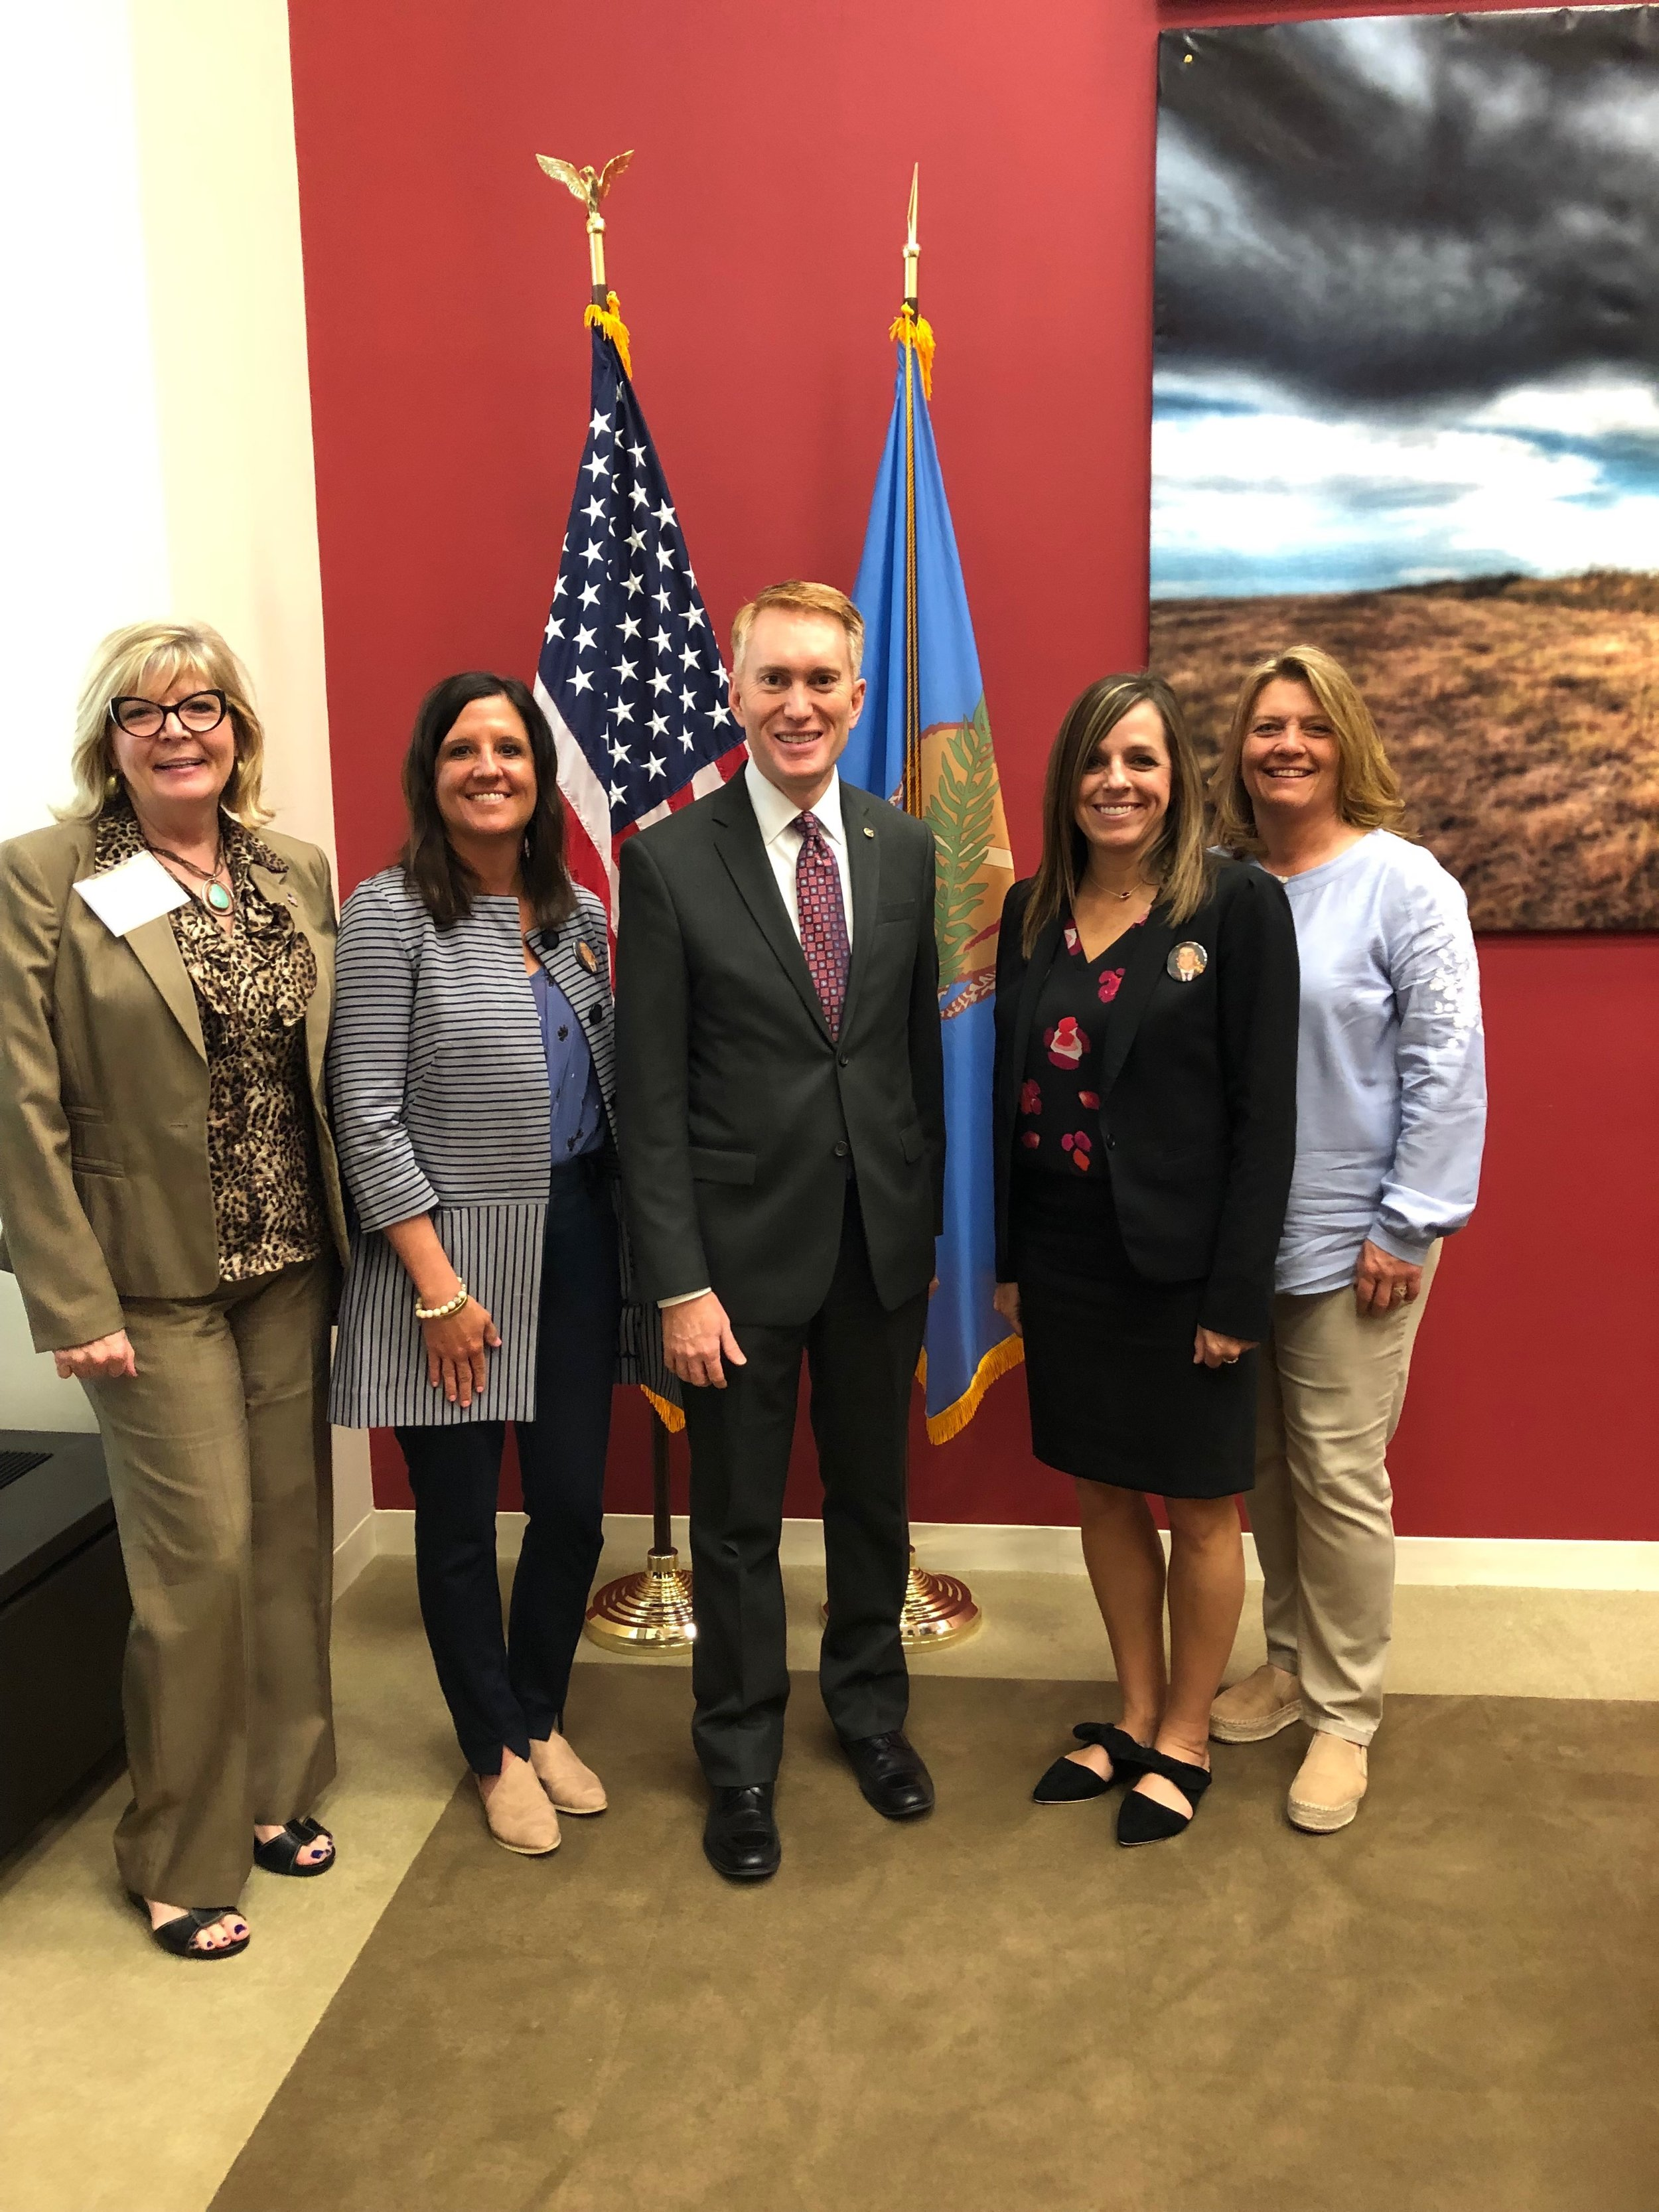 Visiting Senator Lankford while on Capitol Hill